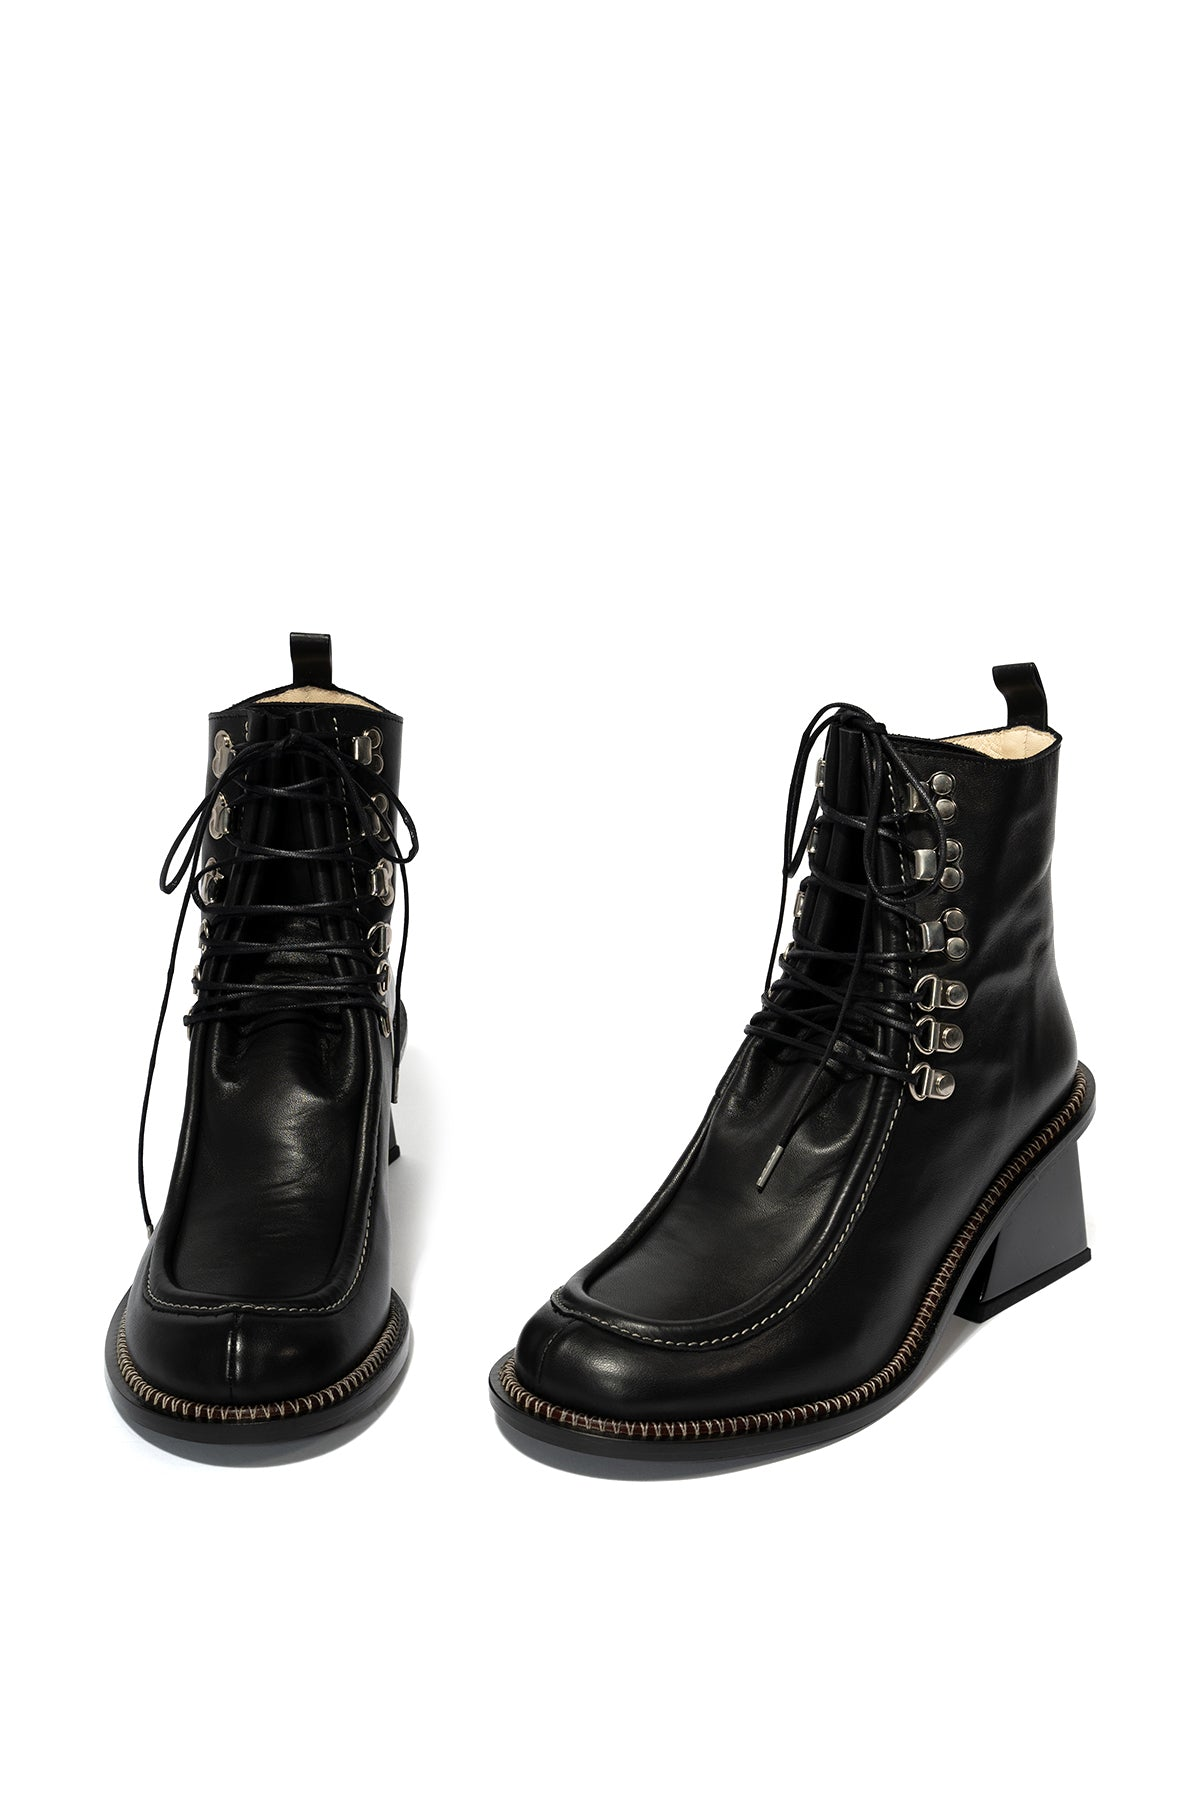 marques almeida BLACK M'A HEEL BOOT